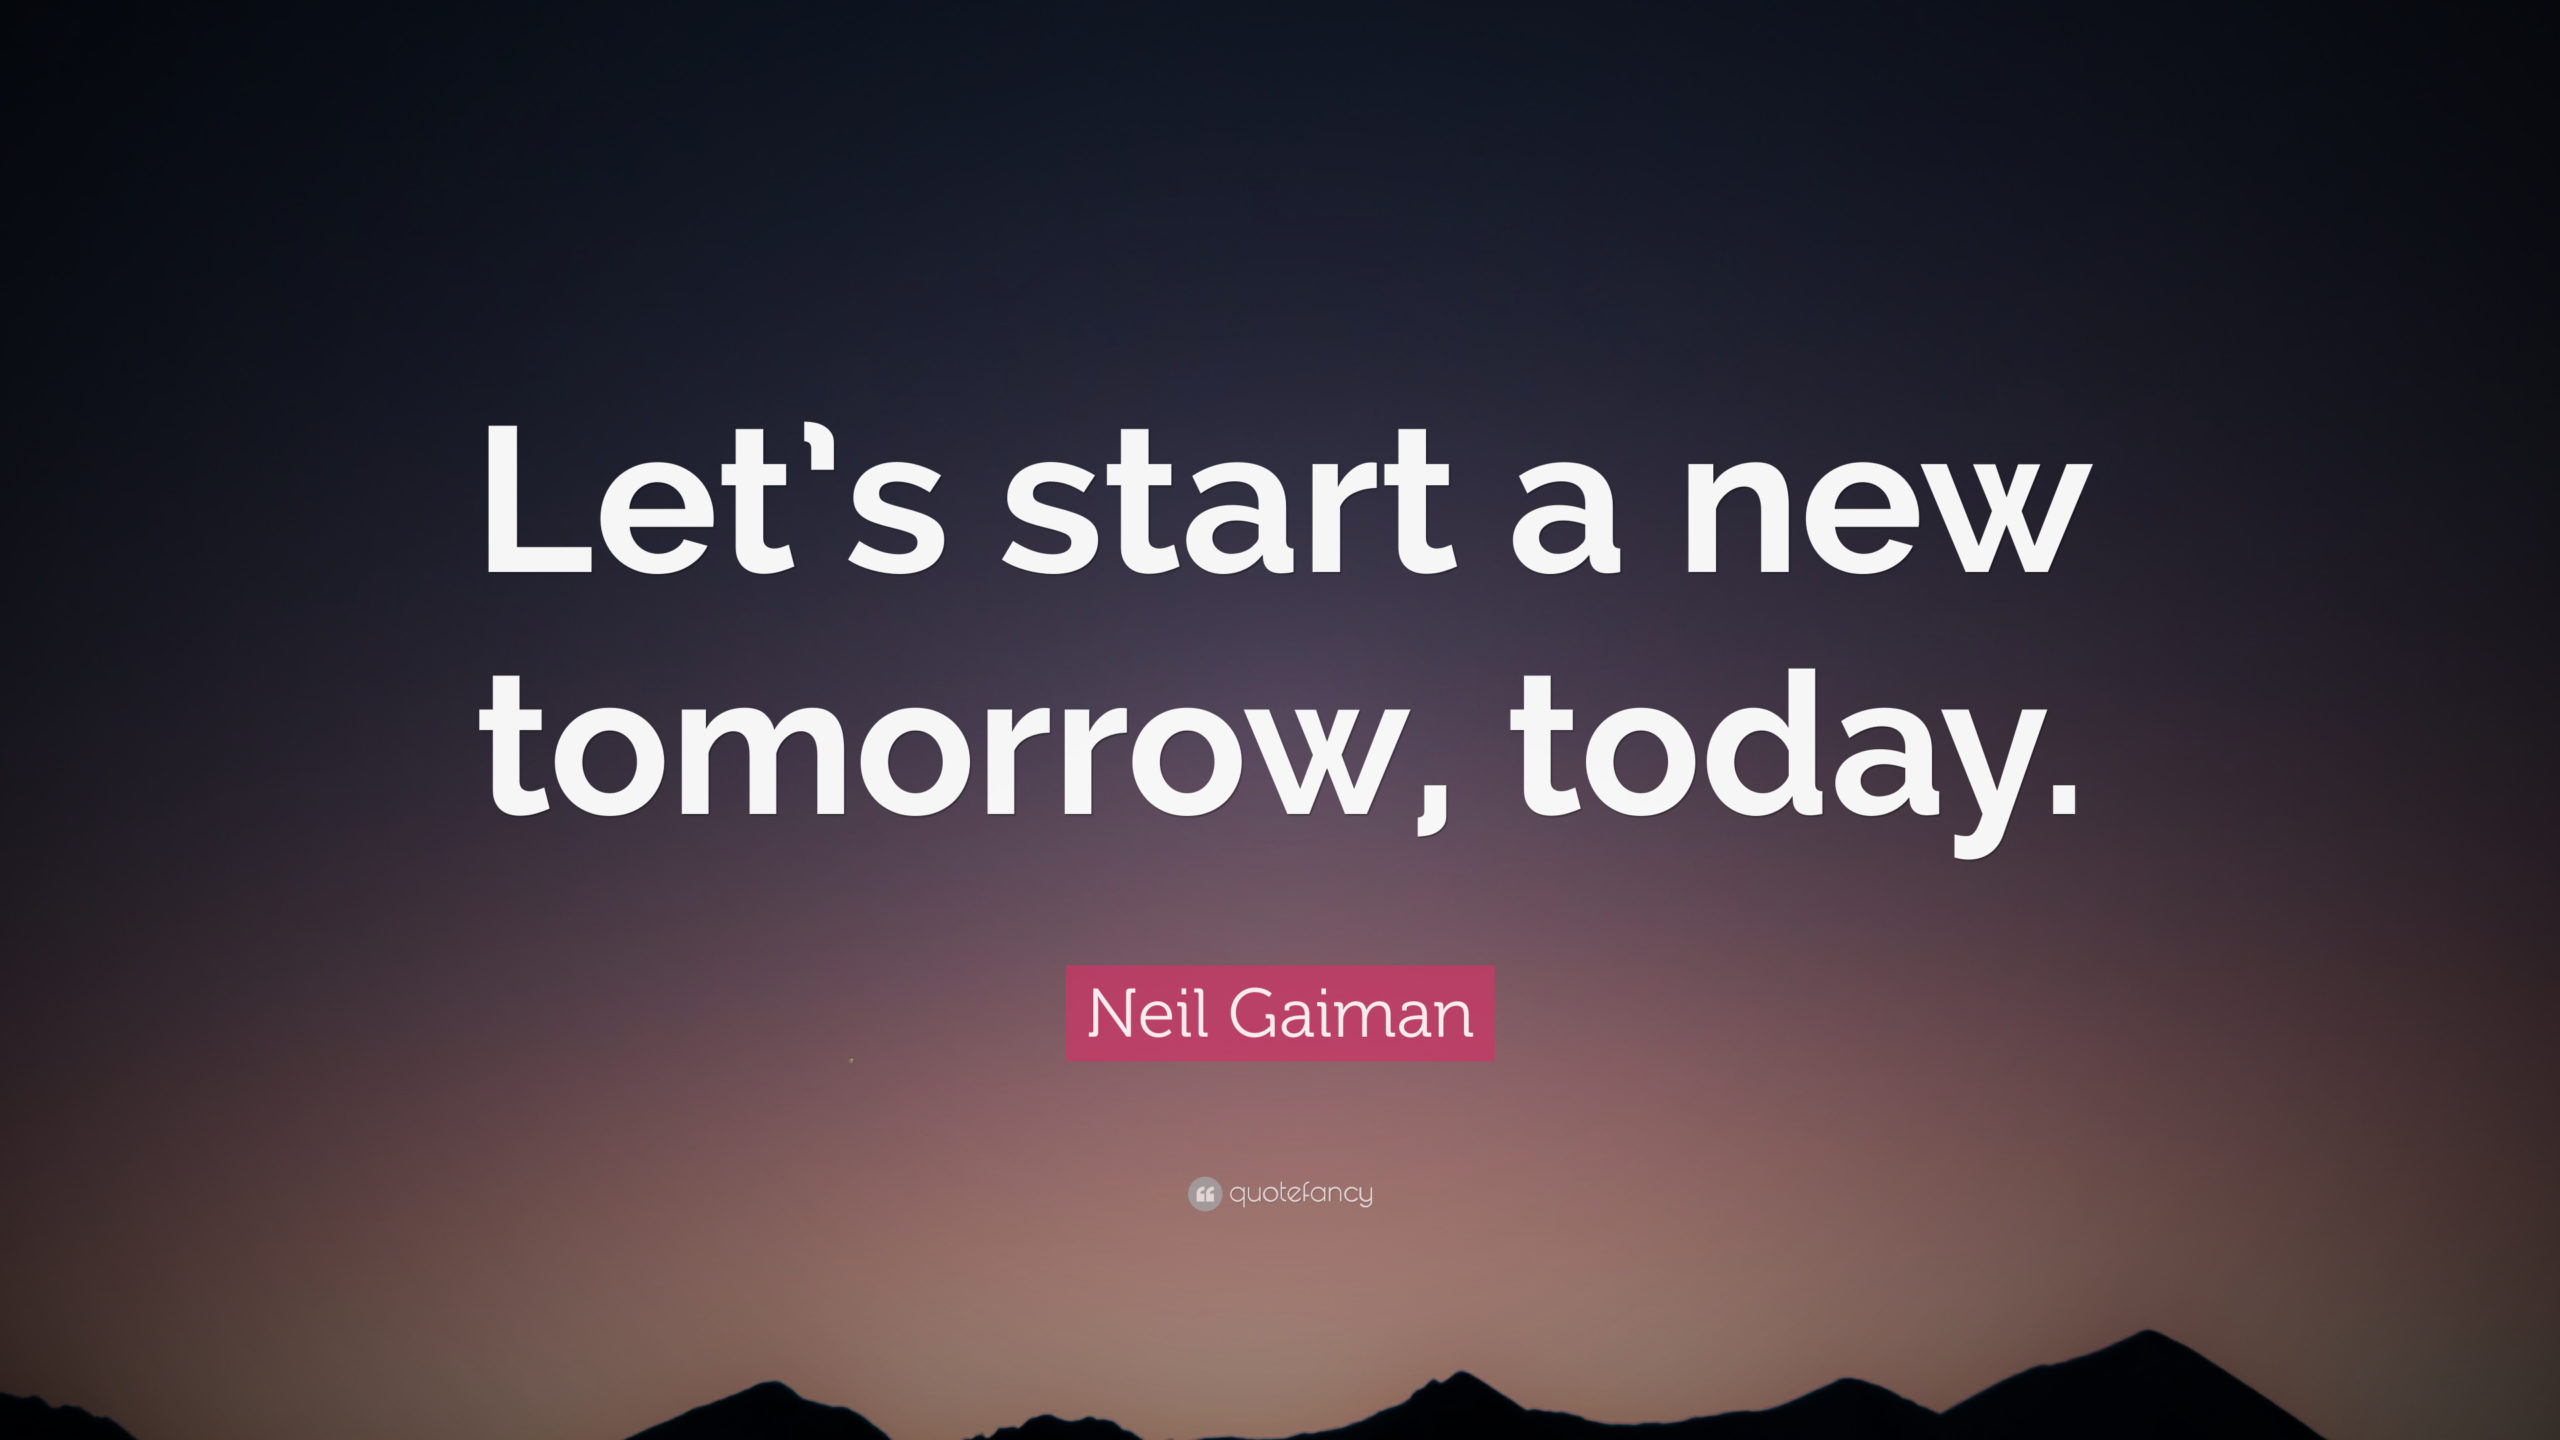 Neil-Gaiman-Quote-Let-s-start-a-new-tomorrow-today